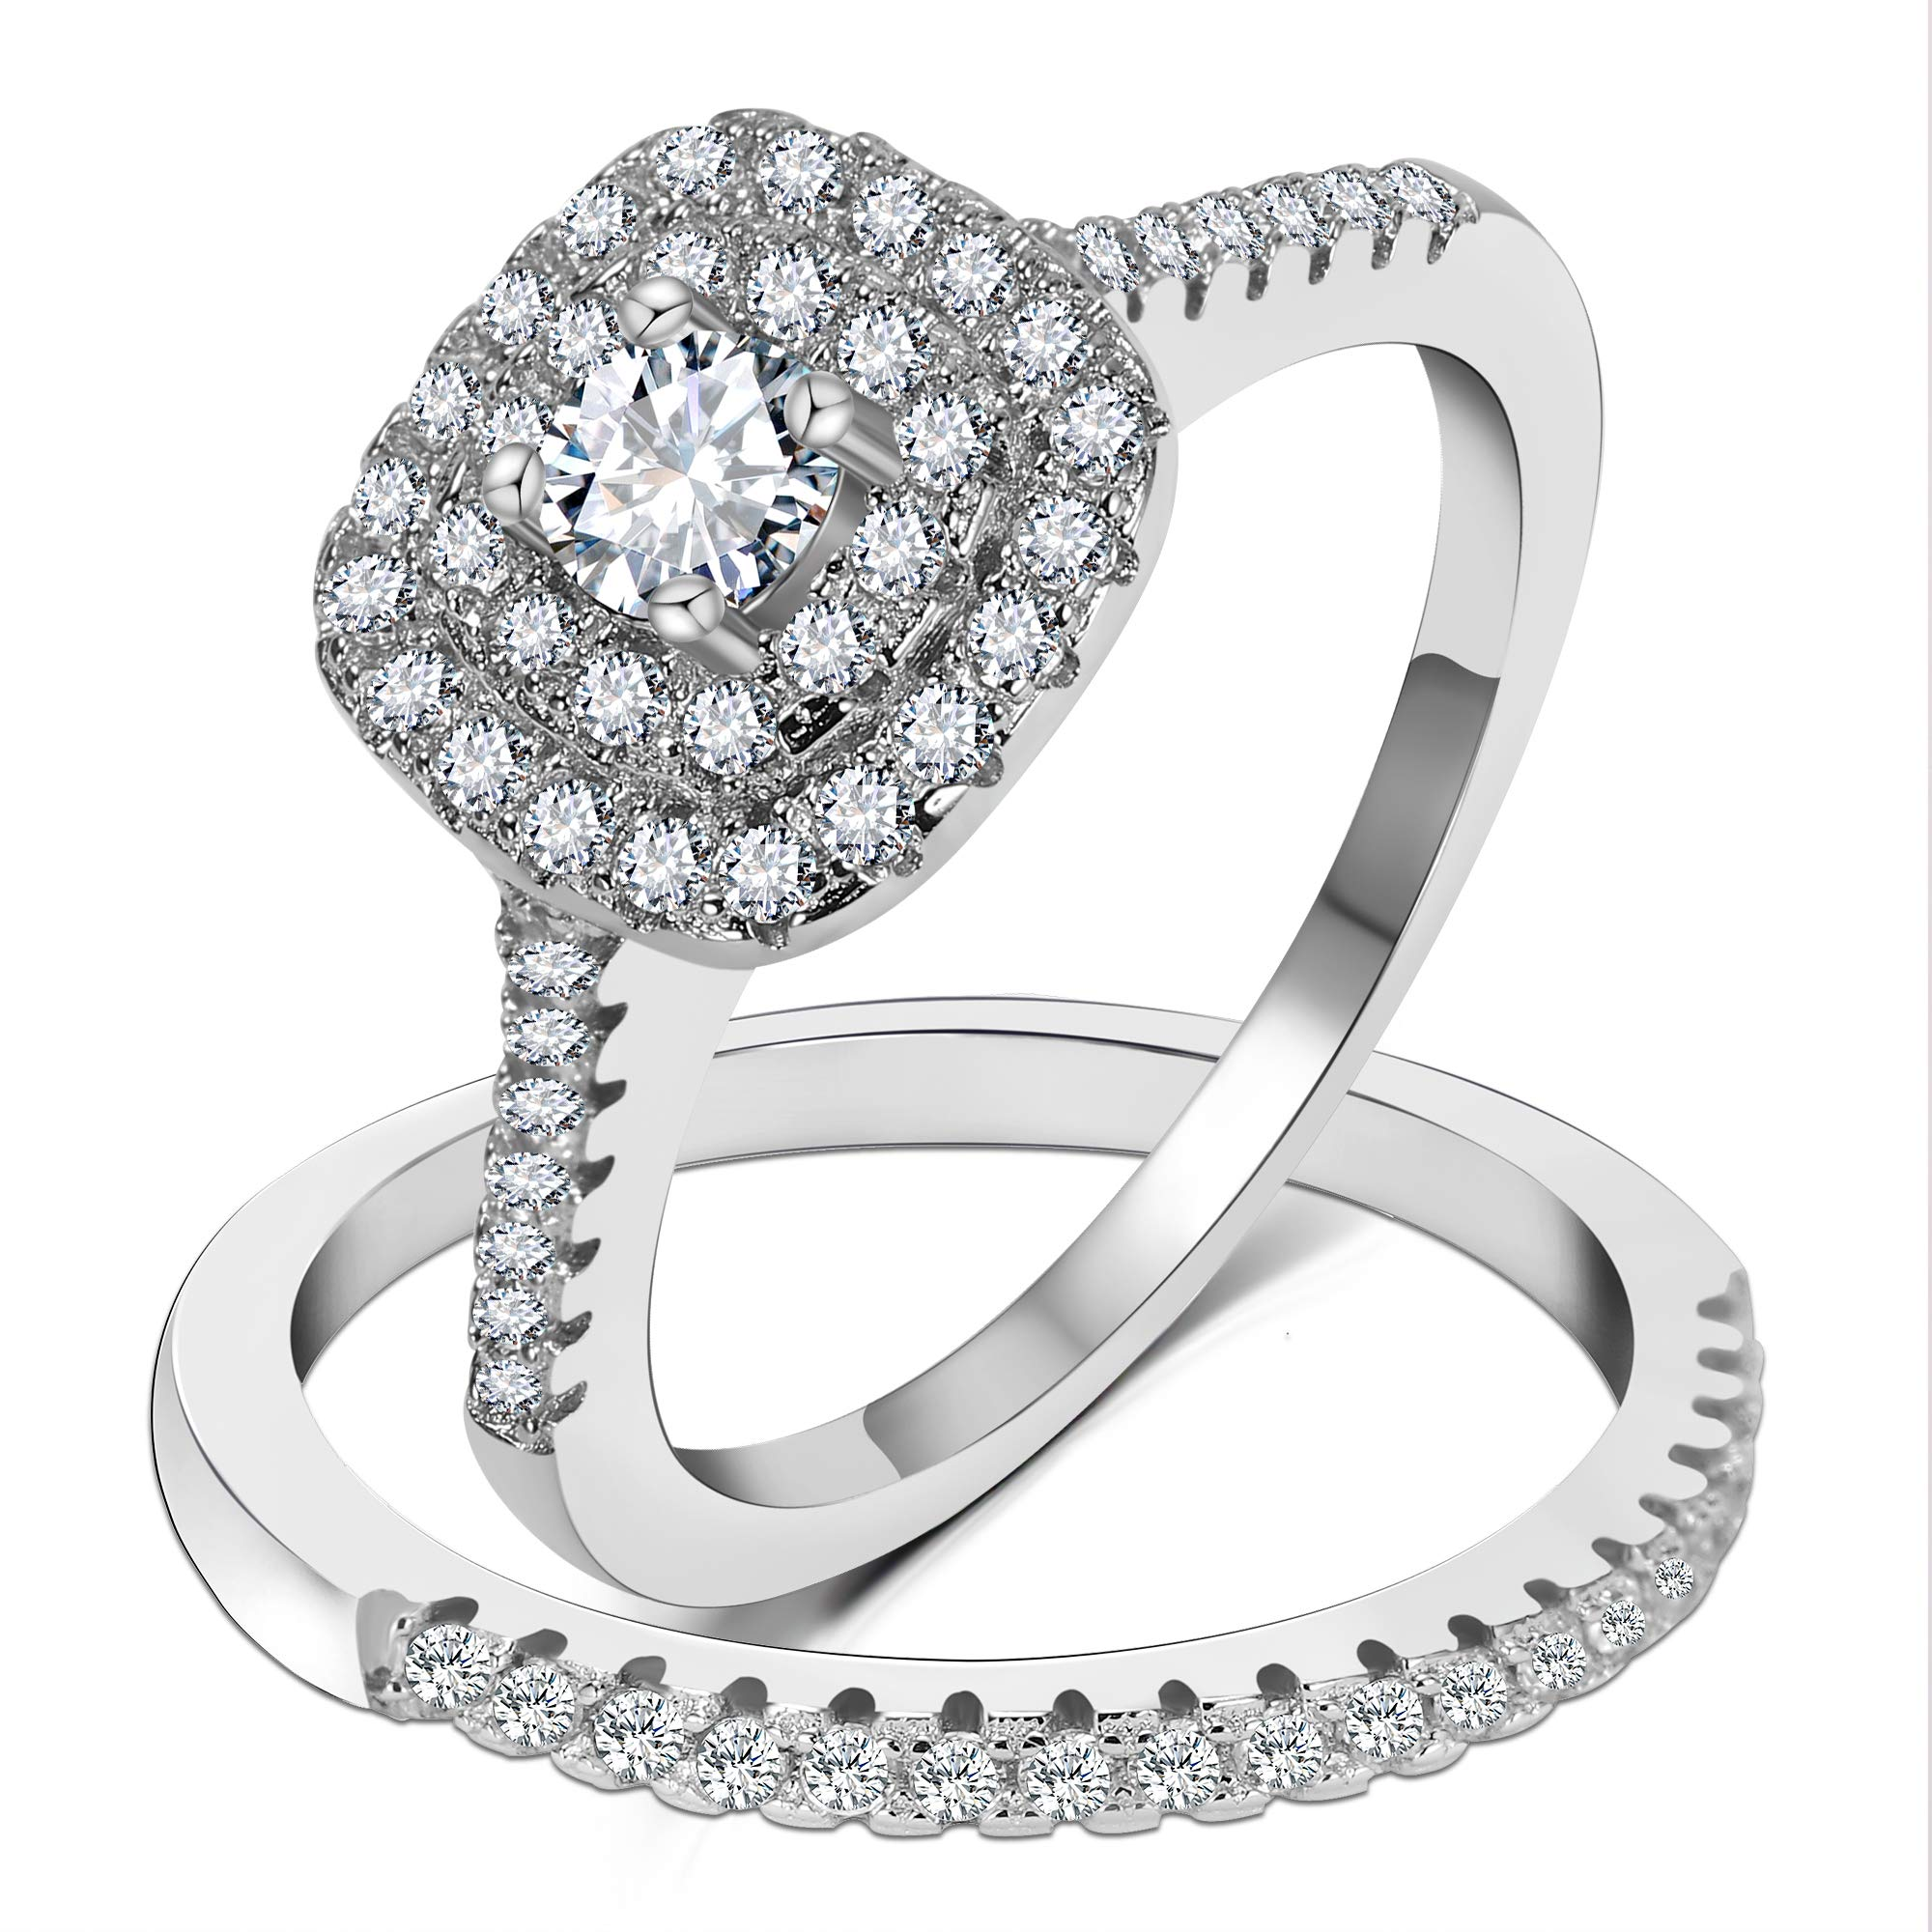 3UMeter 925 Solid Sterling Silver Bridal Wedding Band Engagement Ring Sets with CZ Diamond for Women Fashion Ring Size 7